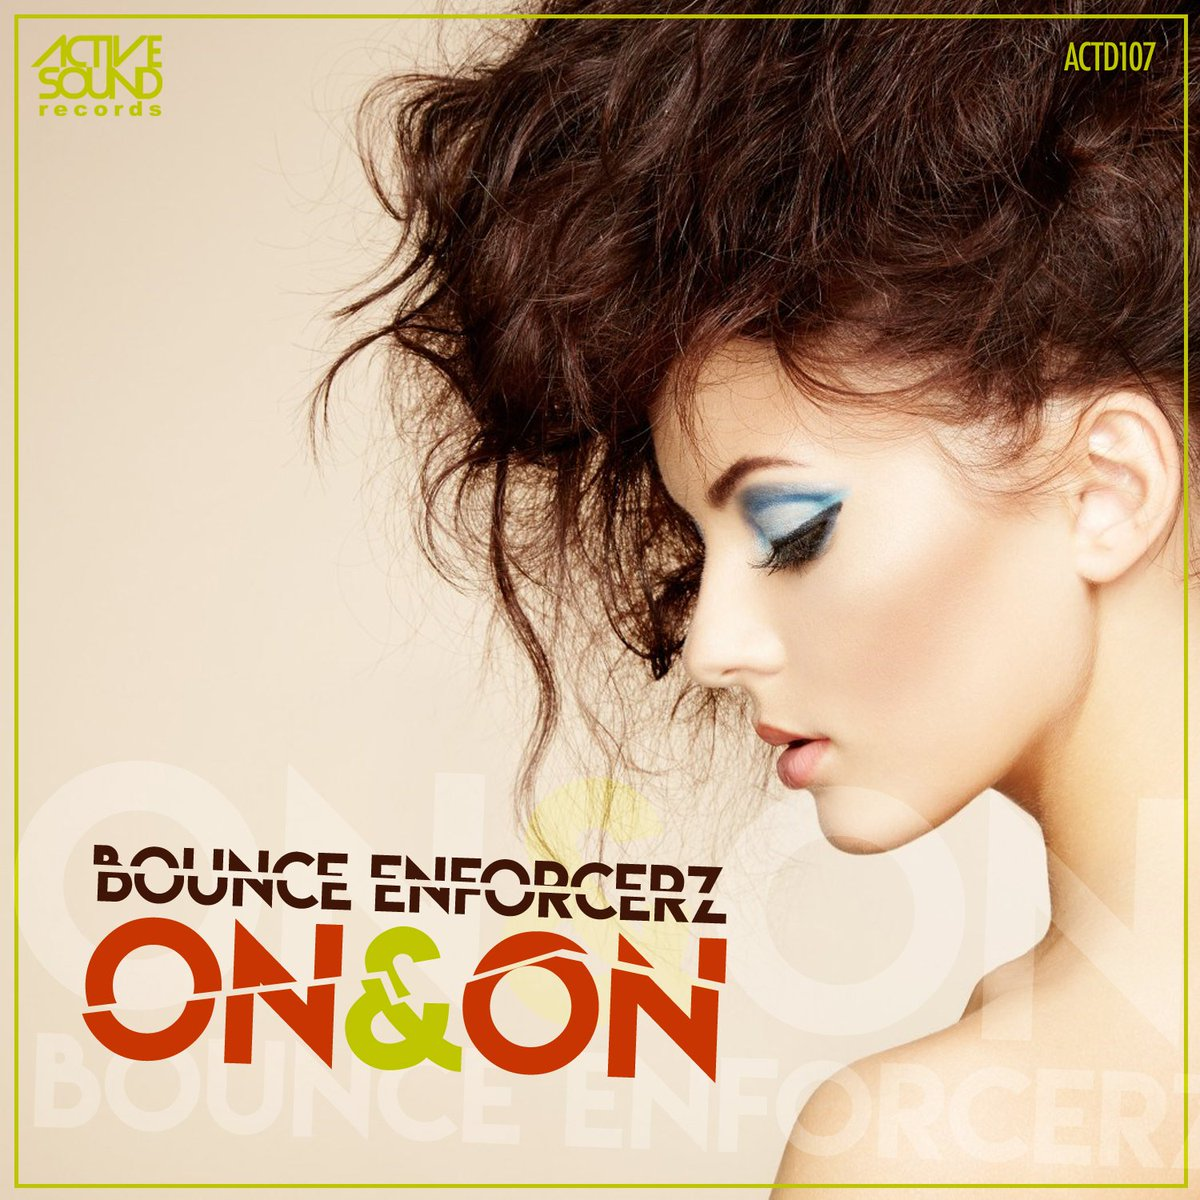 Bounce Enforcerz - On & On